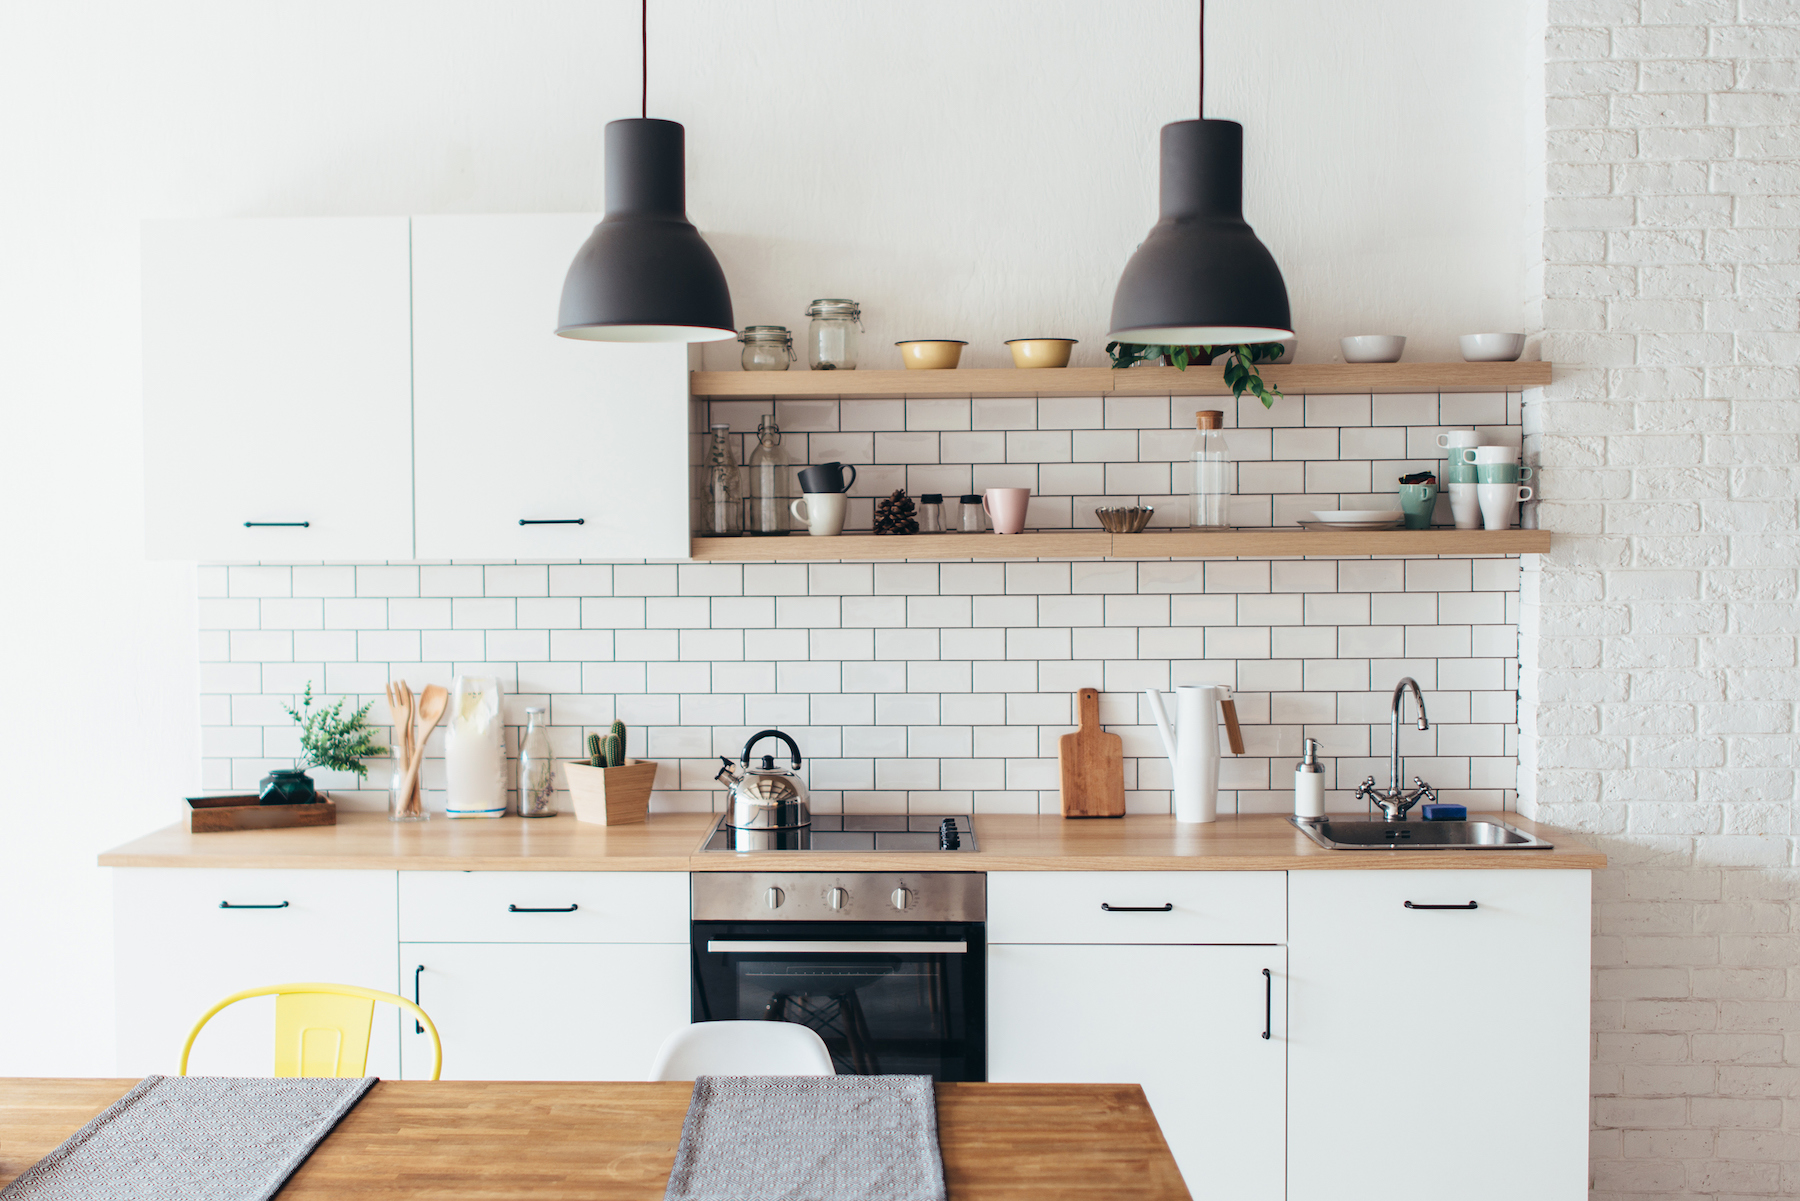 Beautiful Clean Kitchen with open shelving